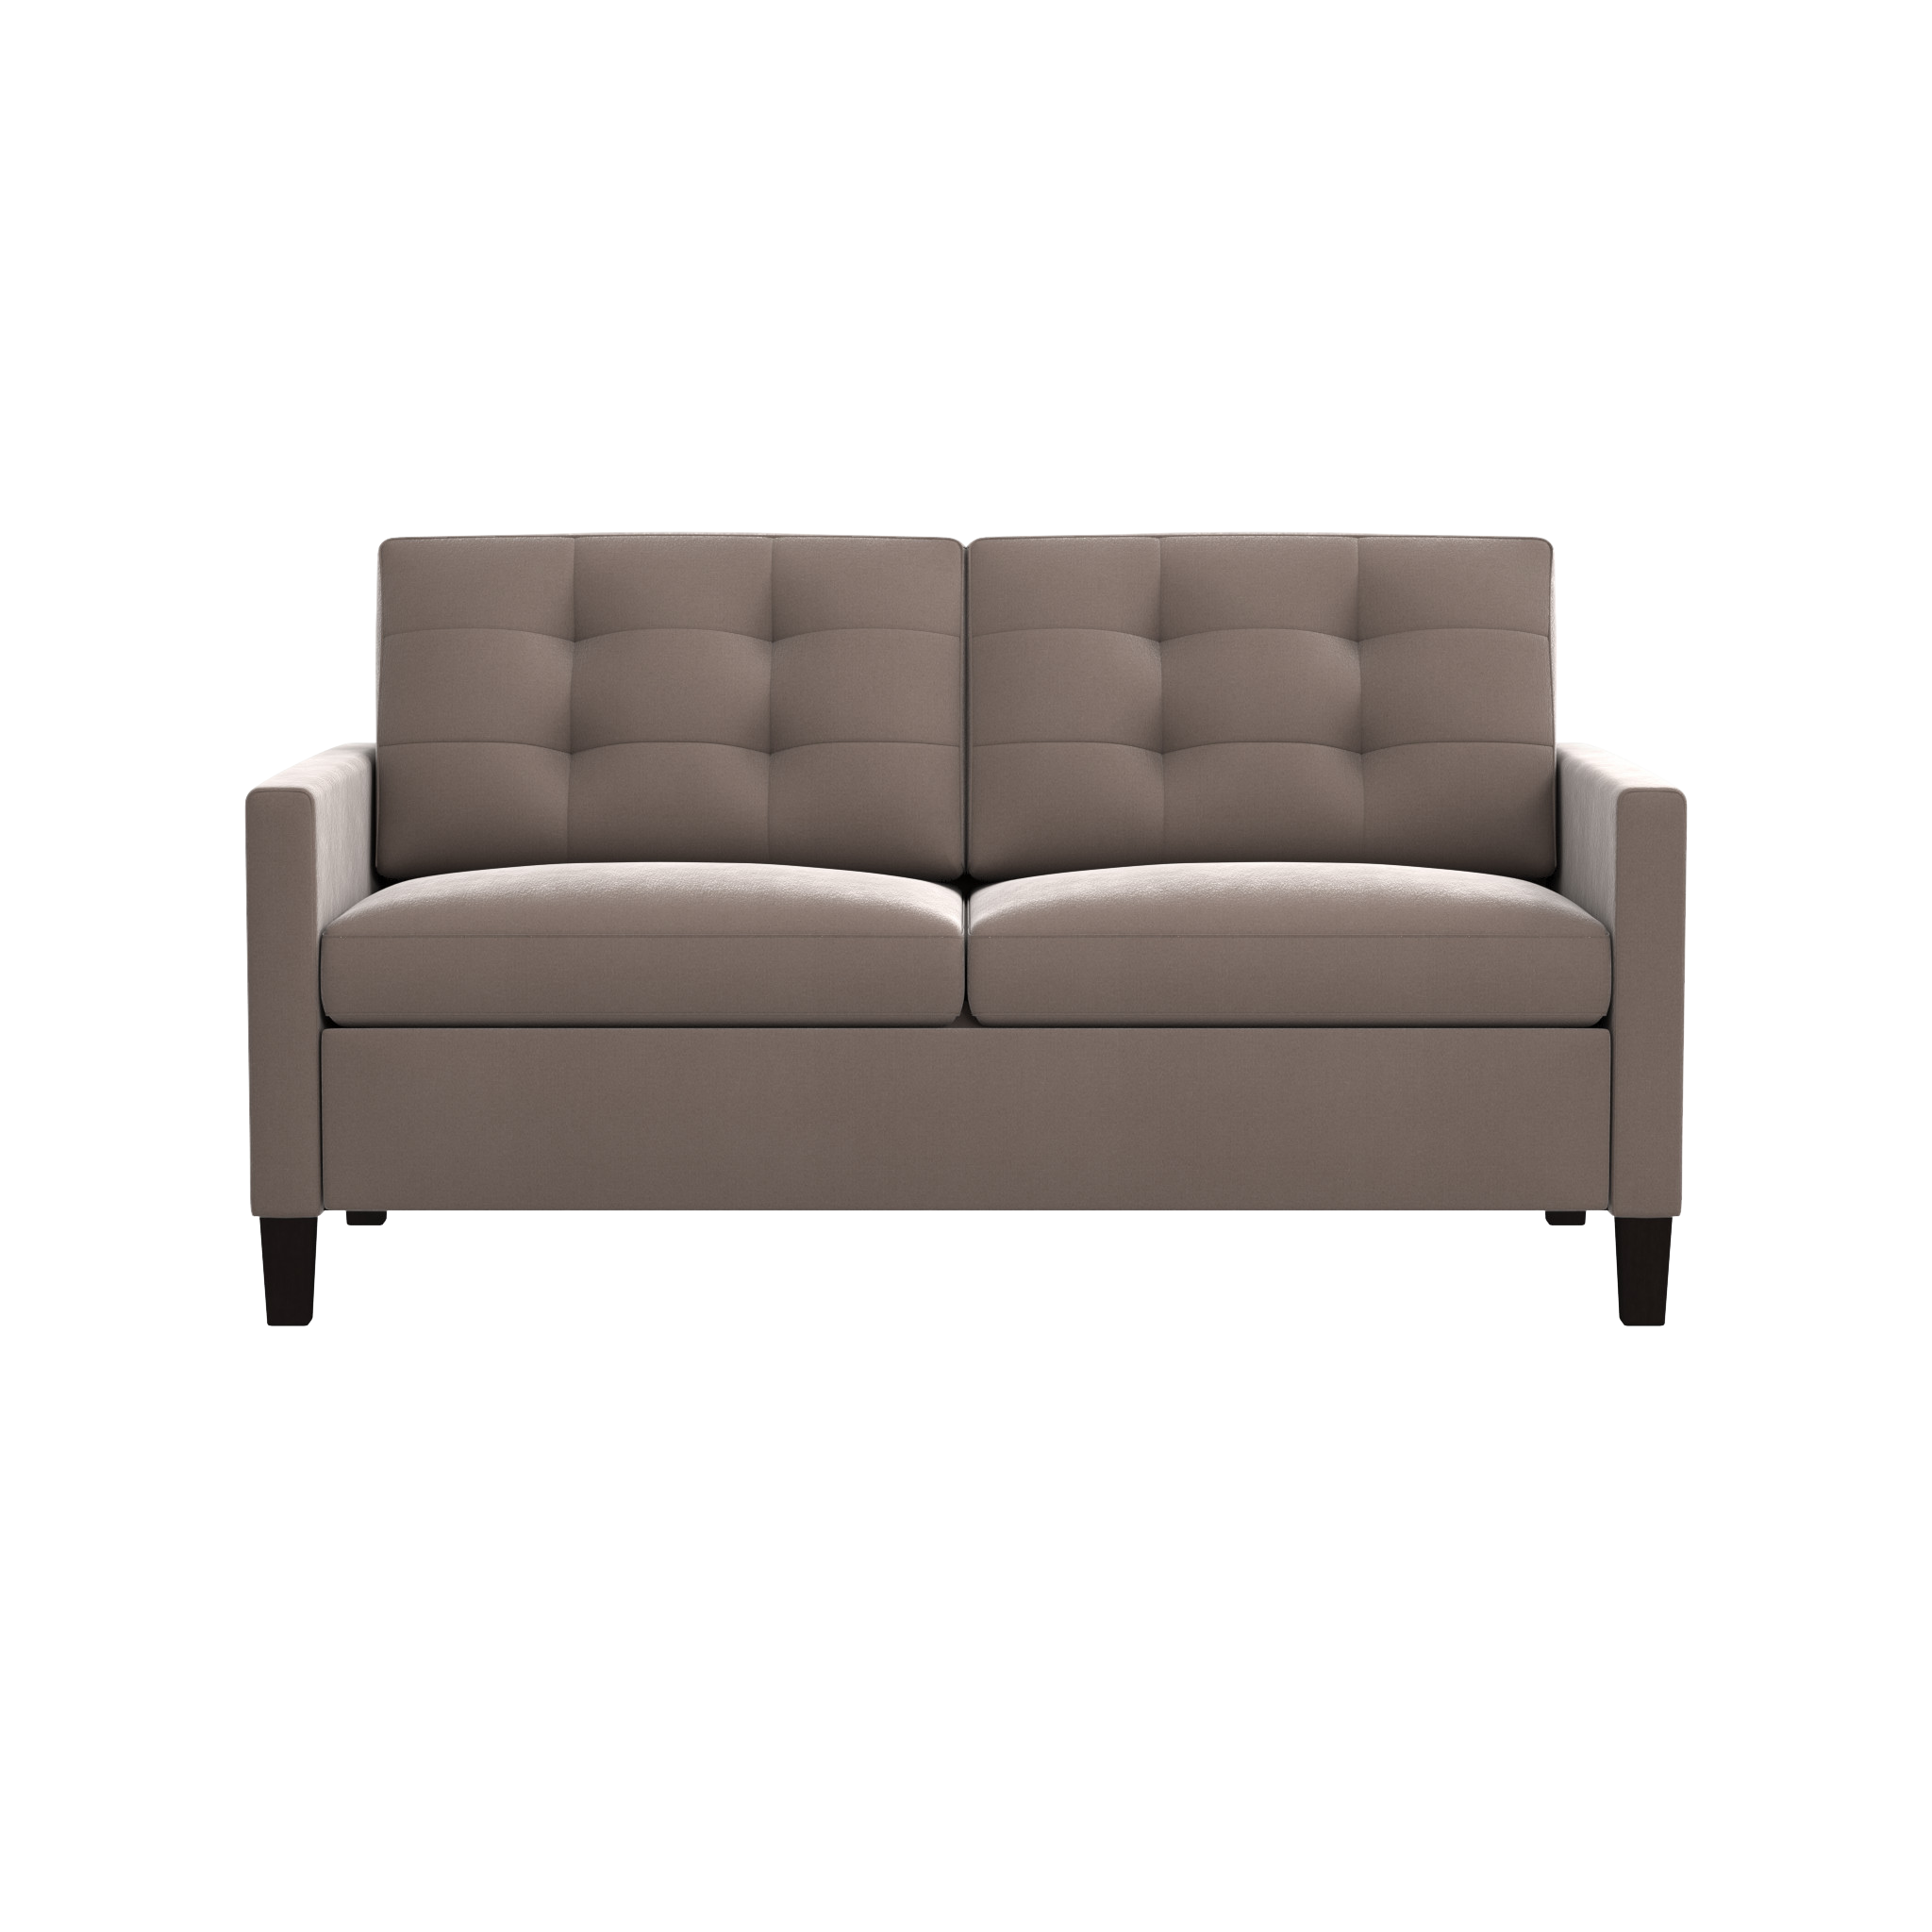 Sofa King Queen Shop Karnes Grey Queen Sleeper Sofa Nicki H Pinterest